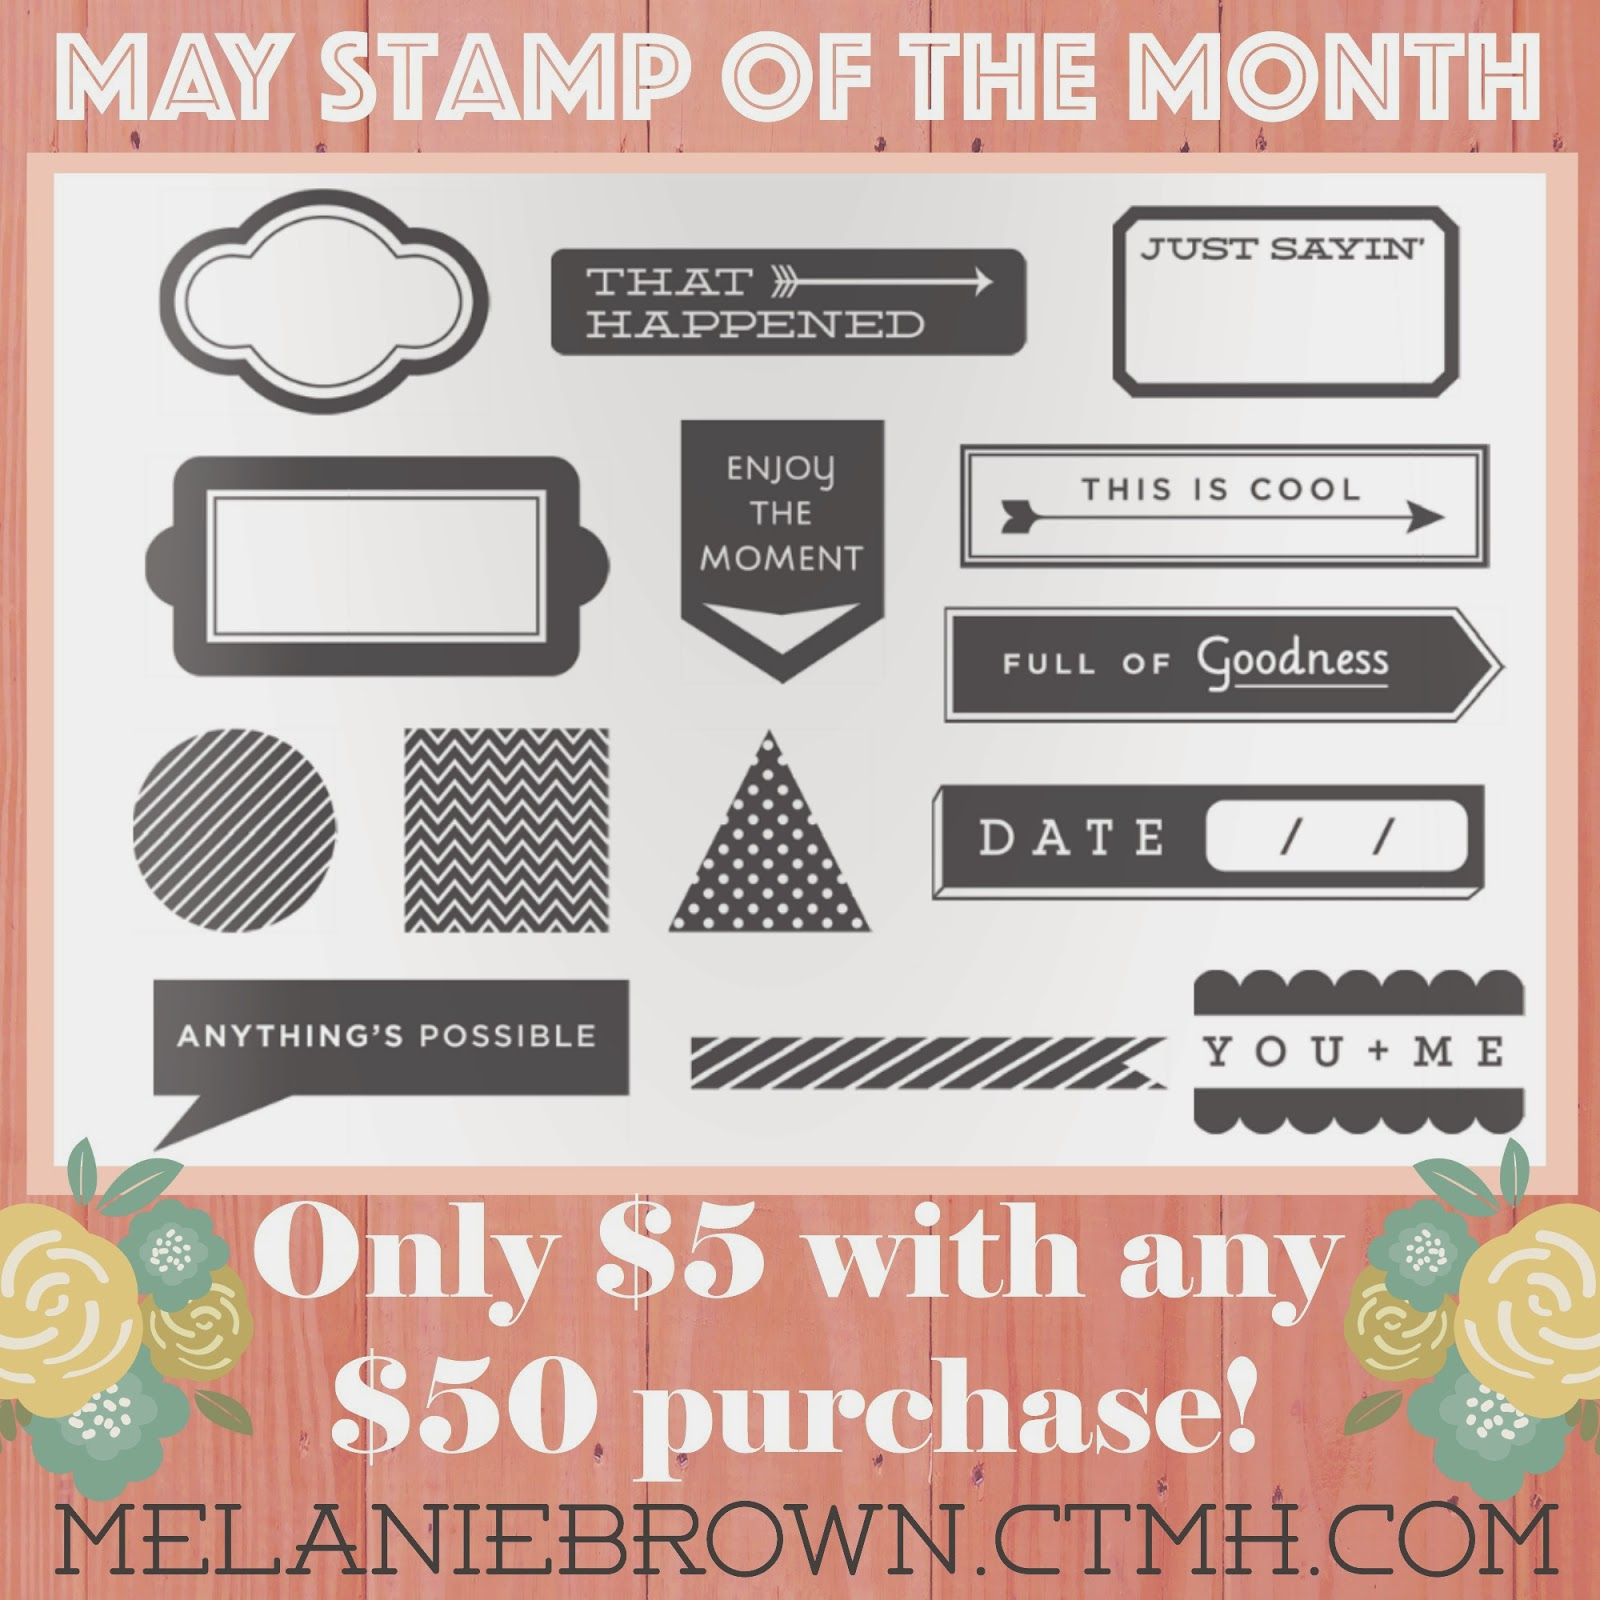 may stamp of the month